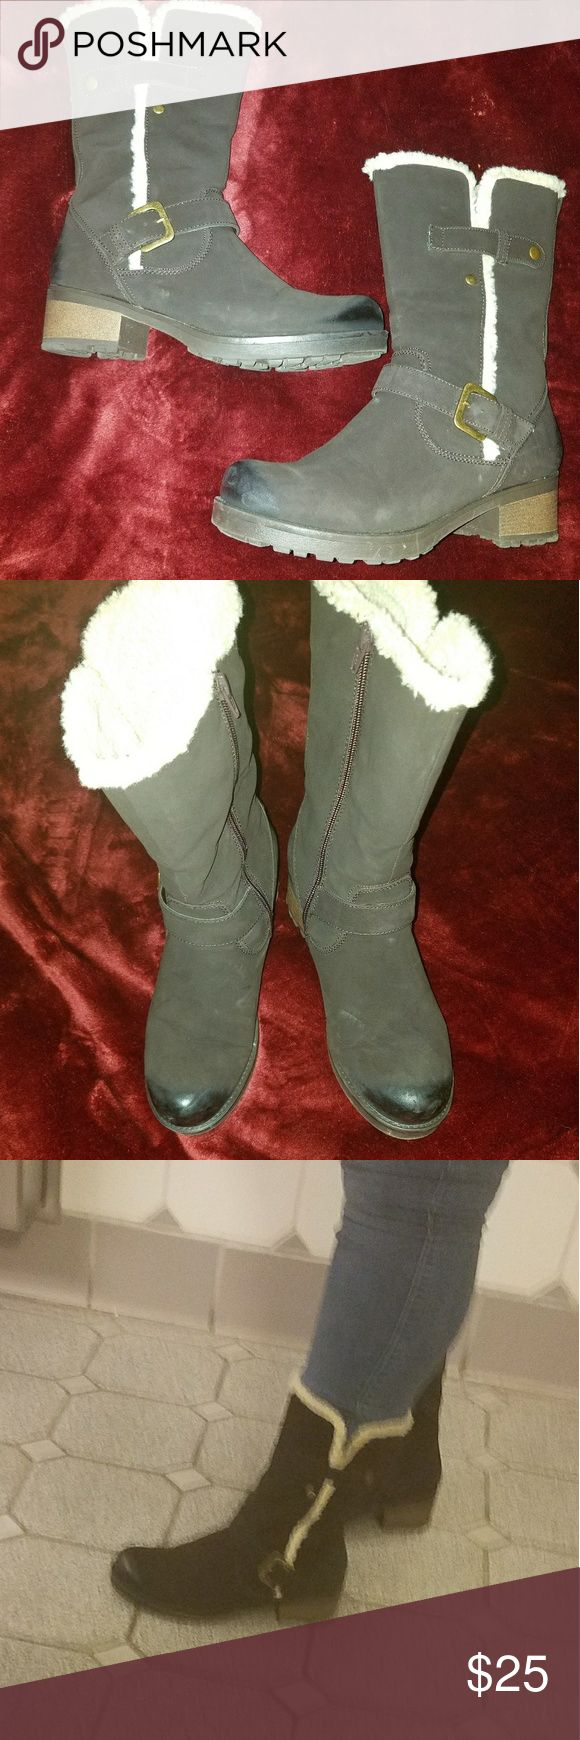 Size 10 brown mid calf boots Very cute mid calf brown suede boots with white fur inside. Only worn a few times Shoes Combat & Moto Boots